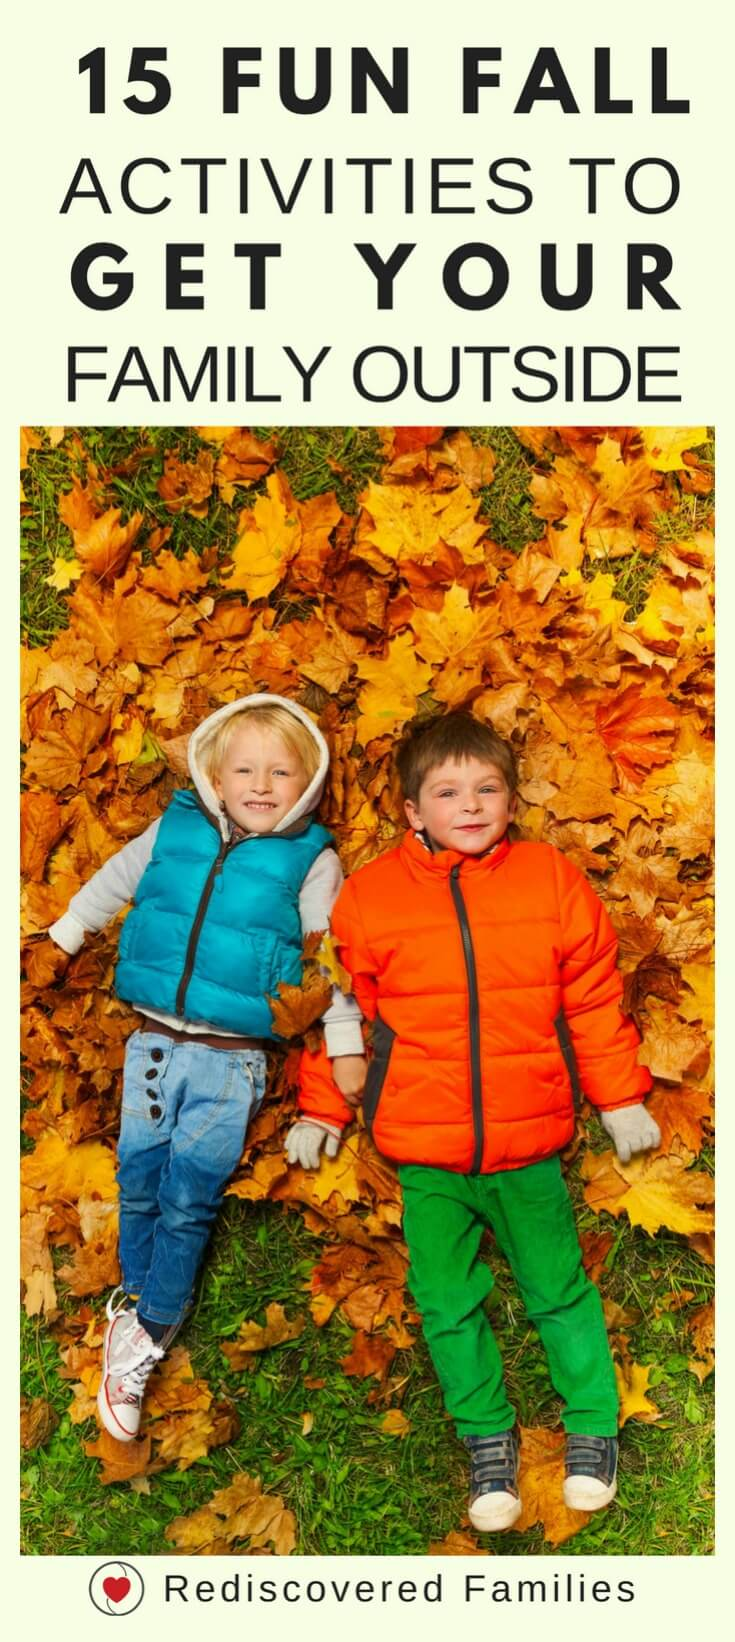 15 Fun And Easy Sewing Projects For Kids: 15 Fun Fall Activities To Get You Outside